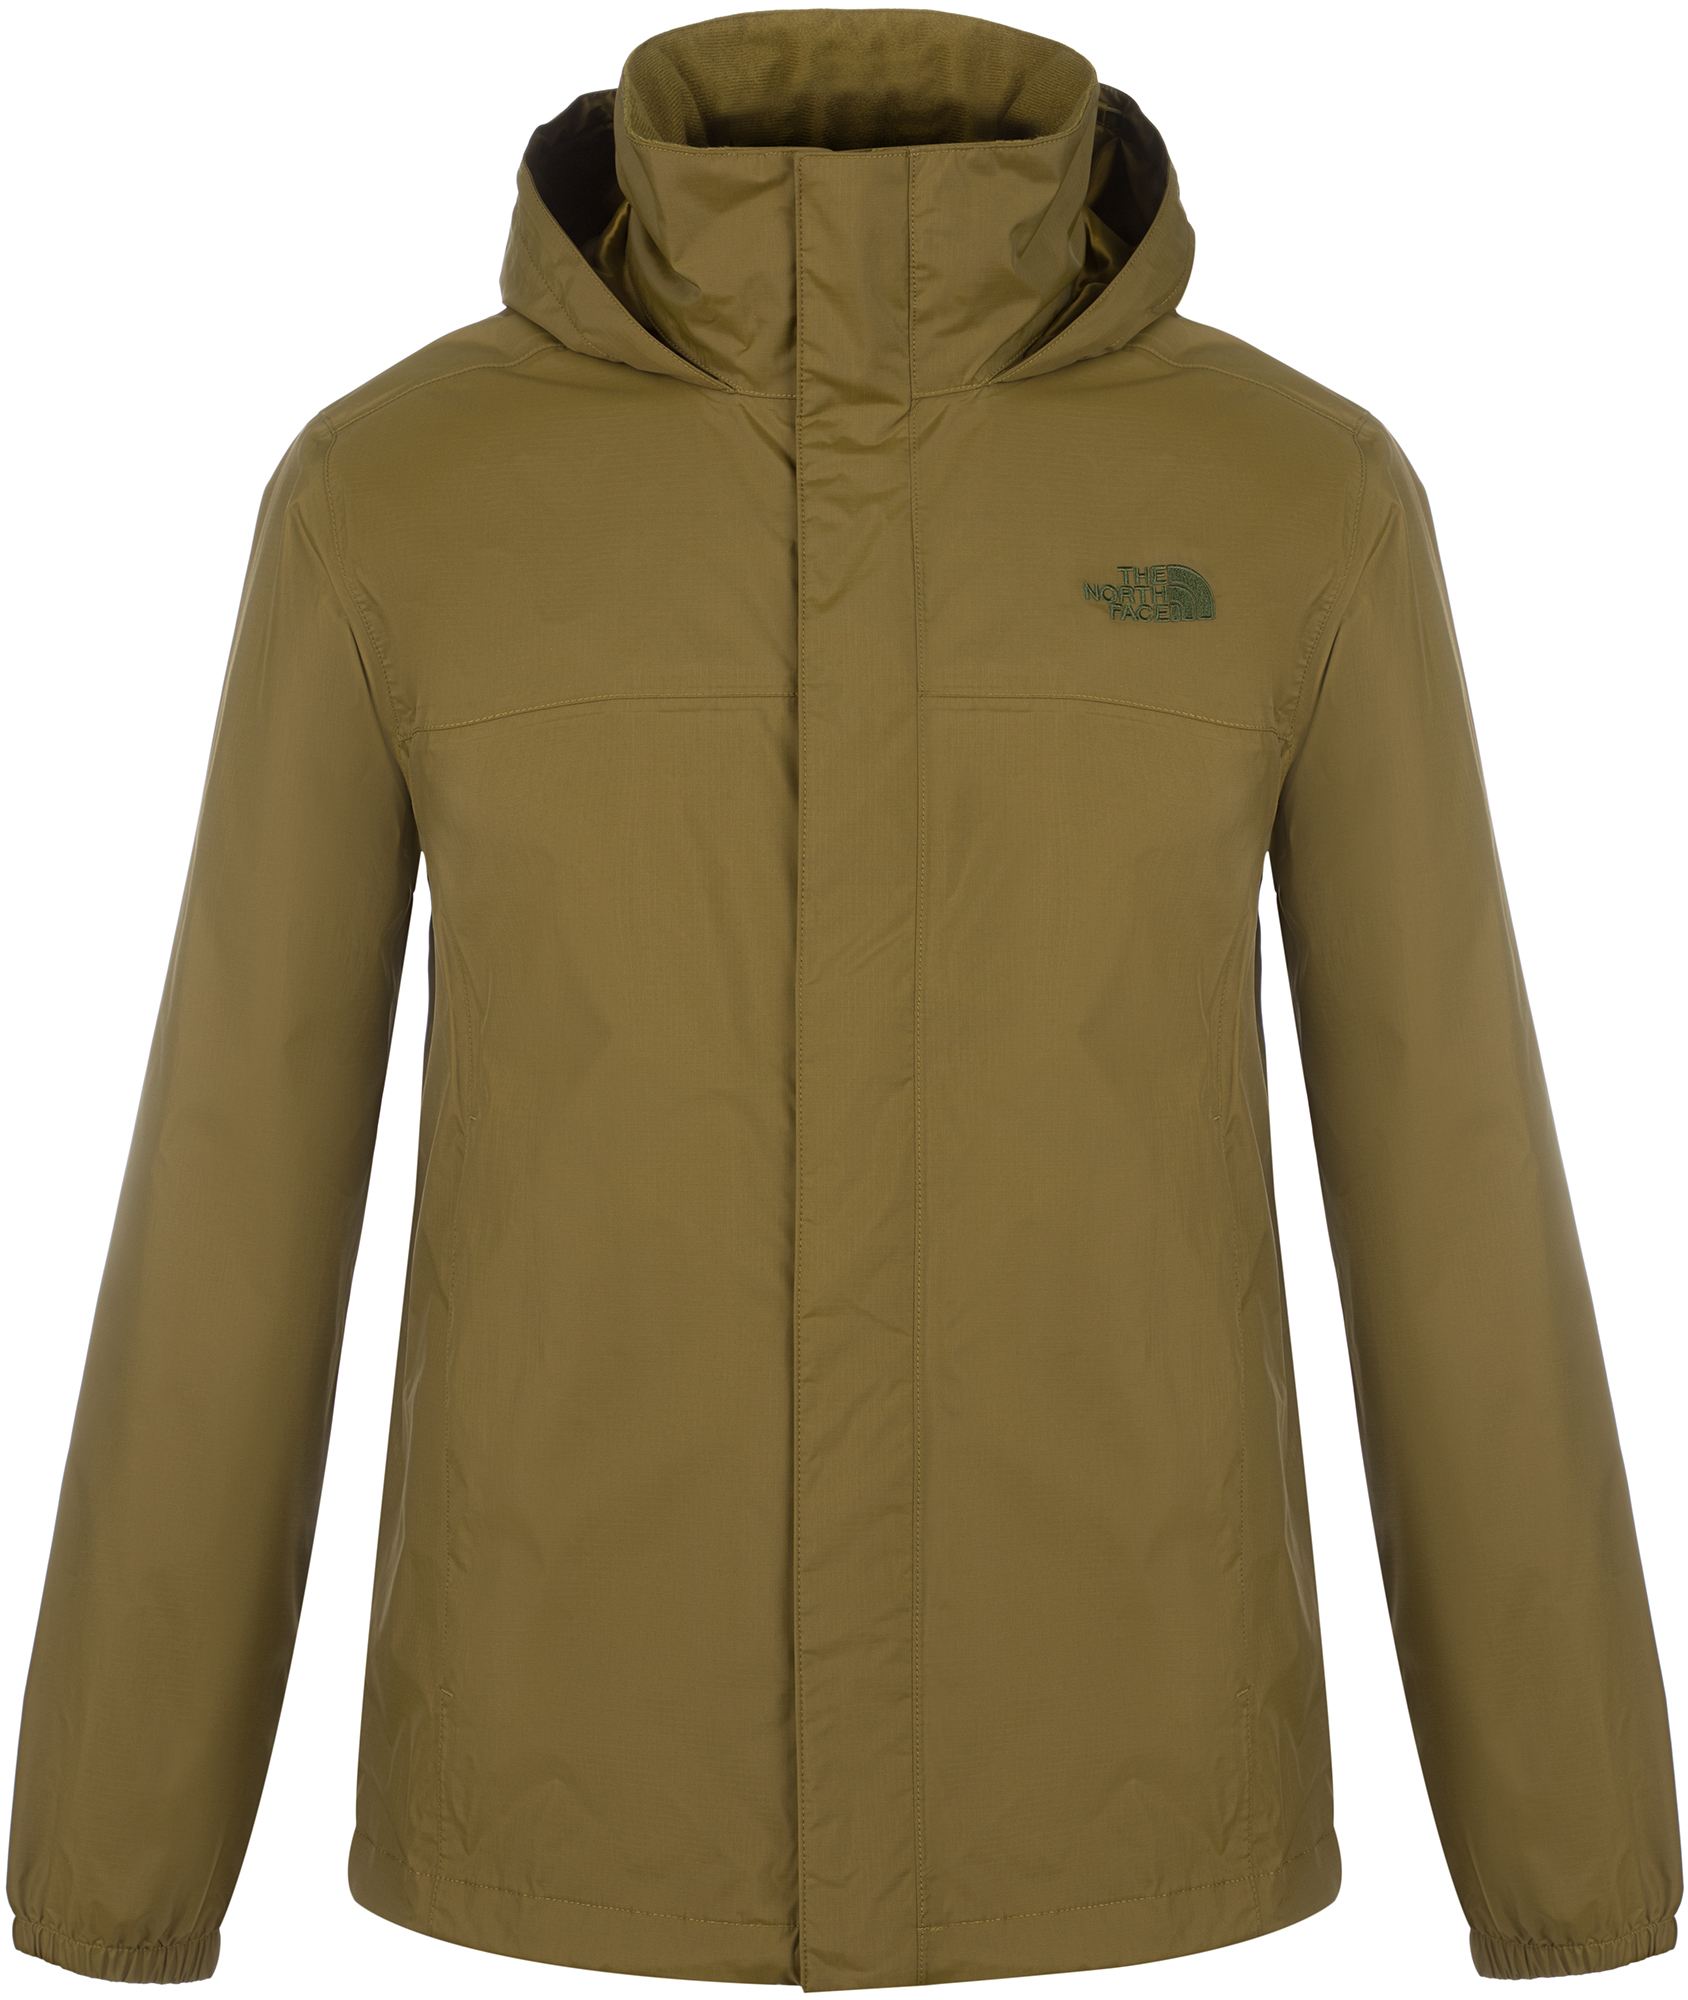 The North Face Ветровка мужская The North Face Resolve II, размер 48